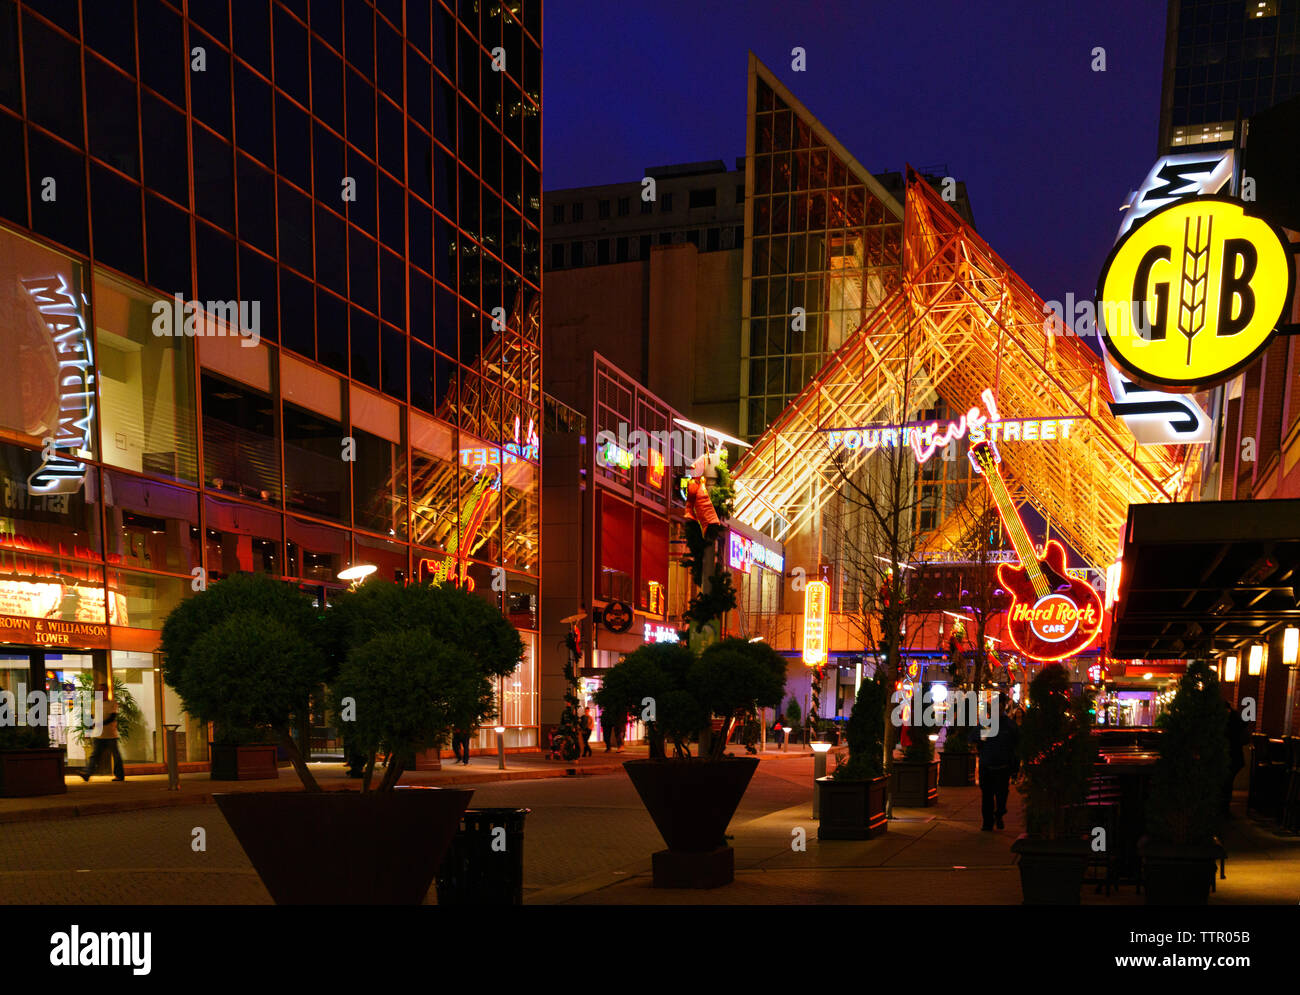 Neon lights Fourth Street Live! at night, a downtown Louisville, Kentucky complex with restaurants, bars, nightlife, sports and entertainment venues Stock Photo